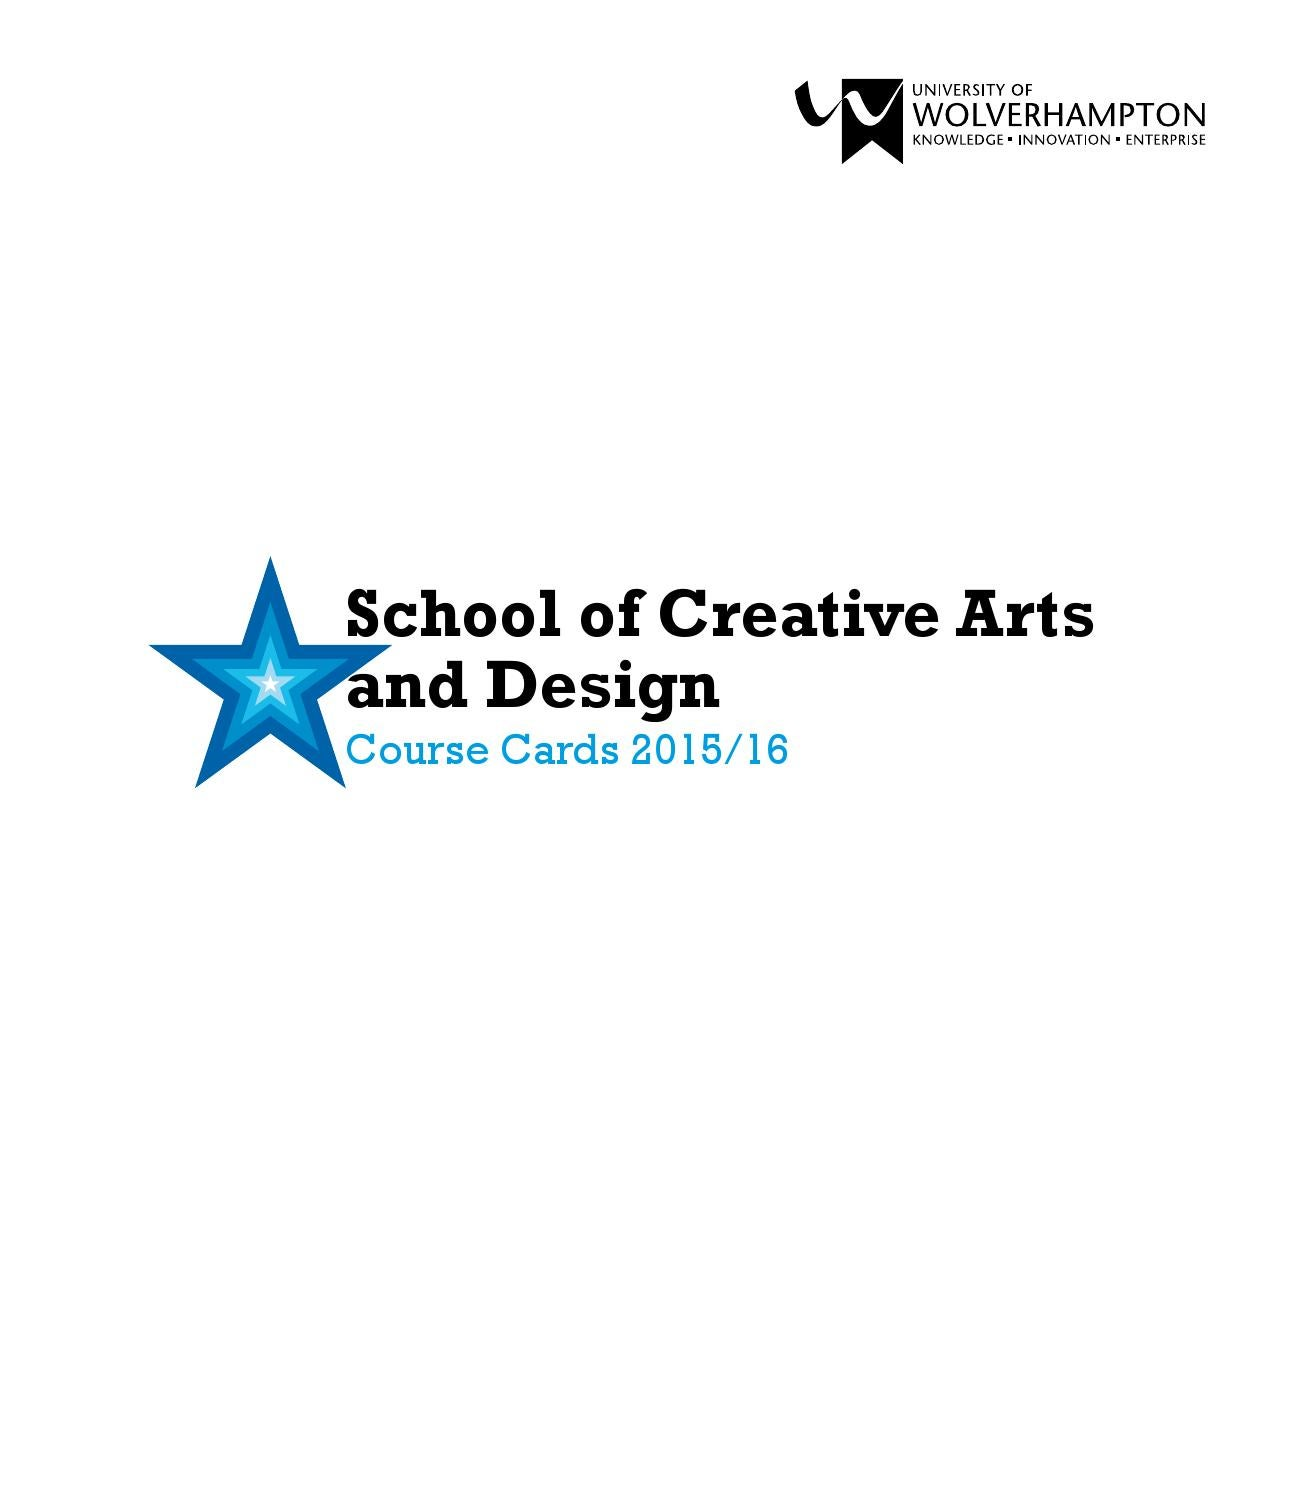 Creative Arts and Design Course Cards by University of